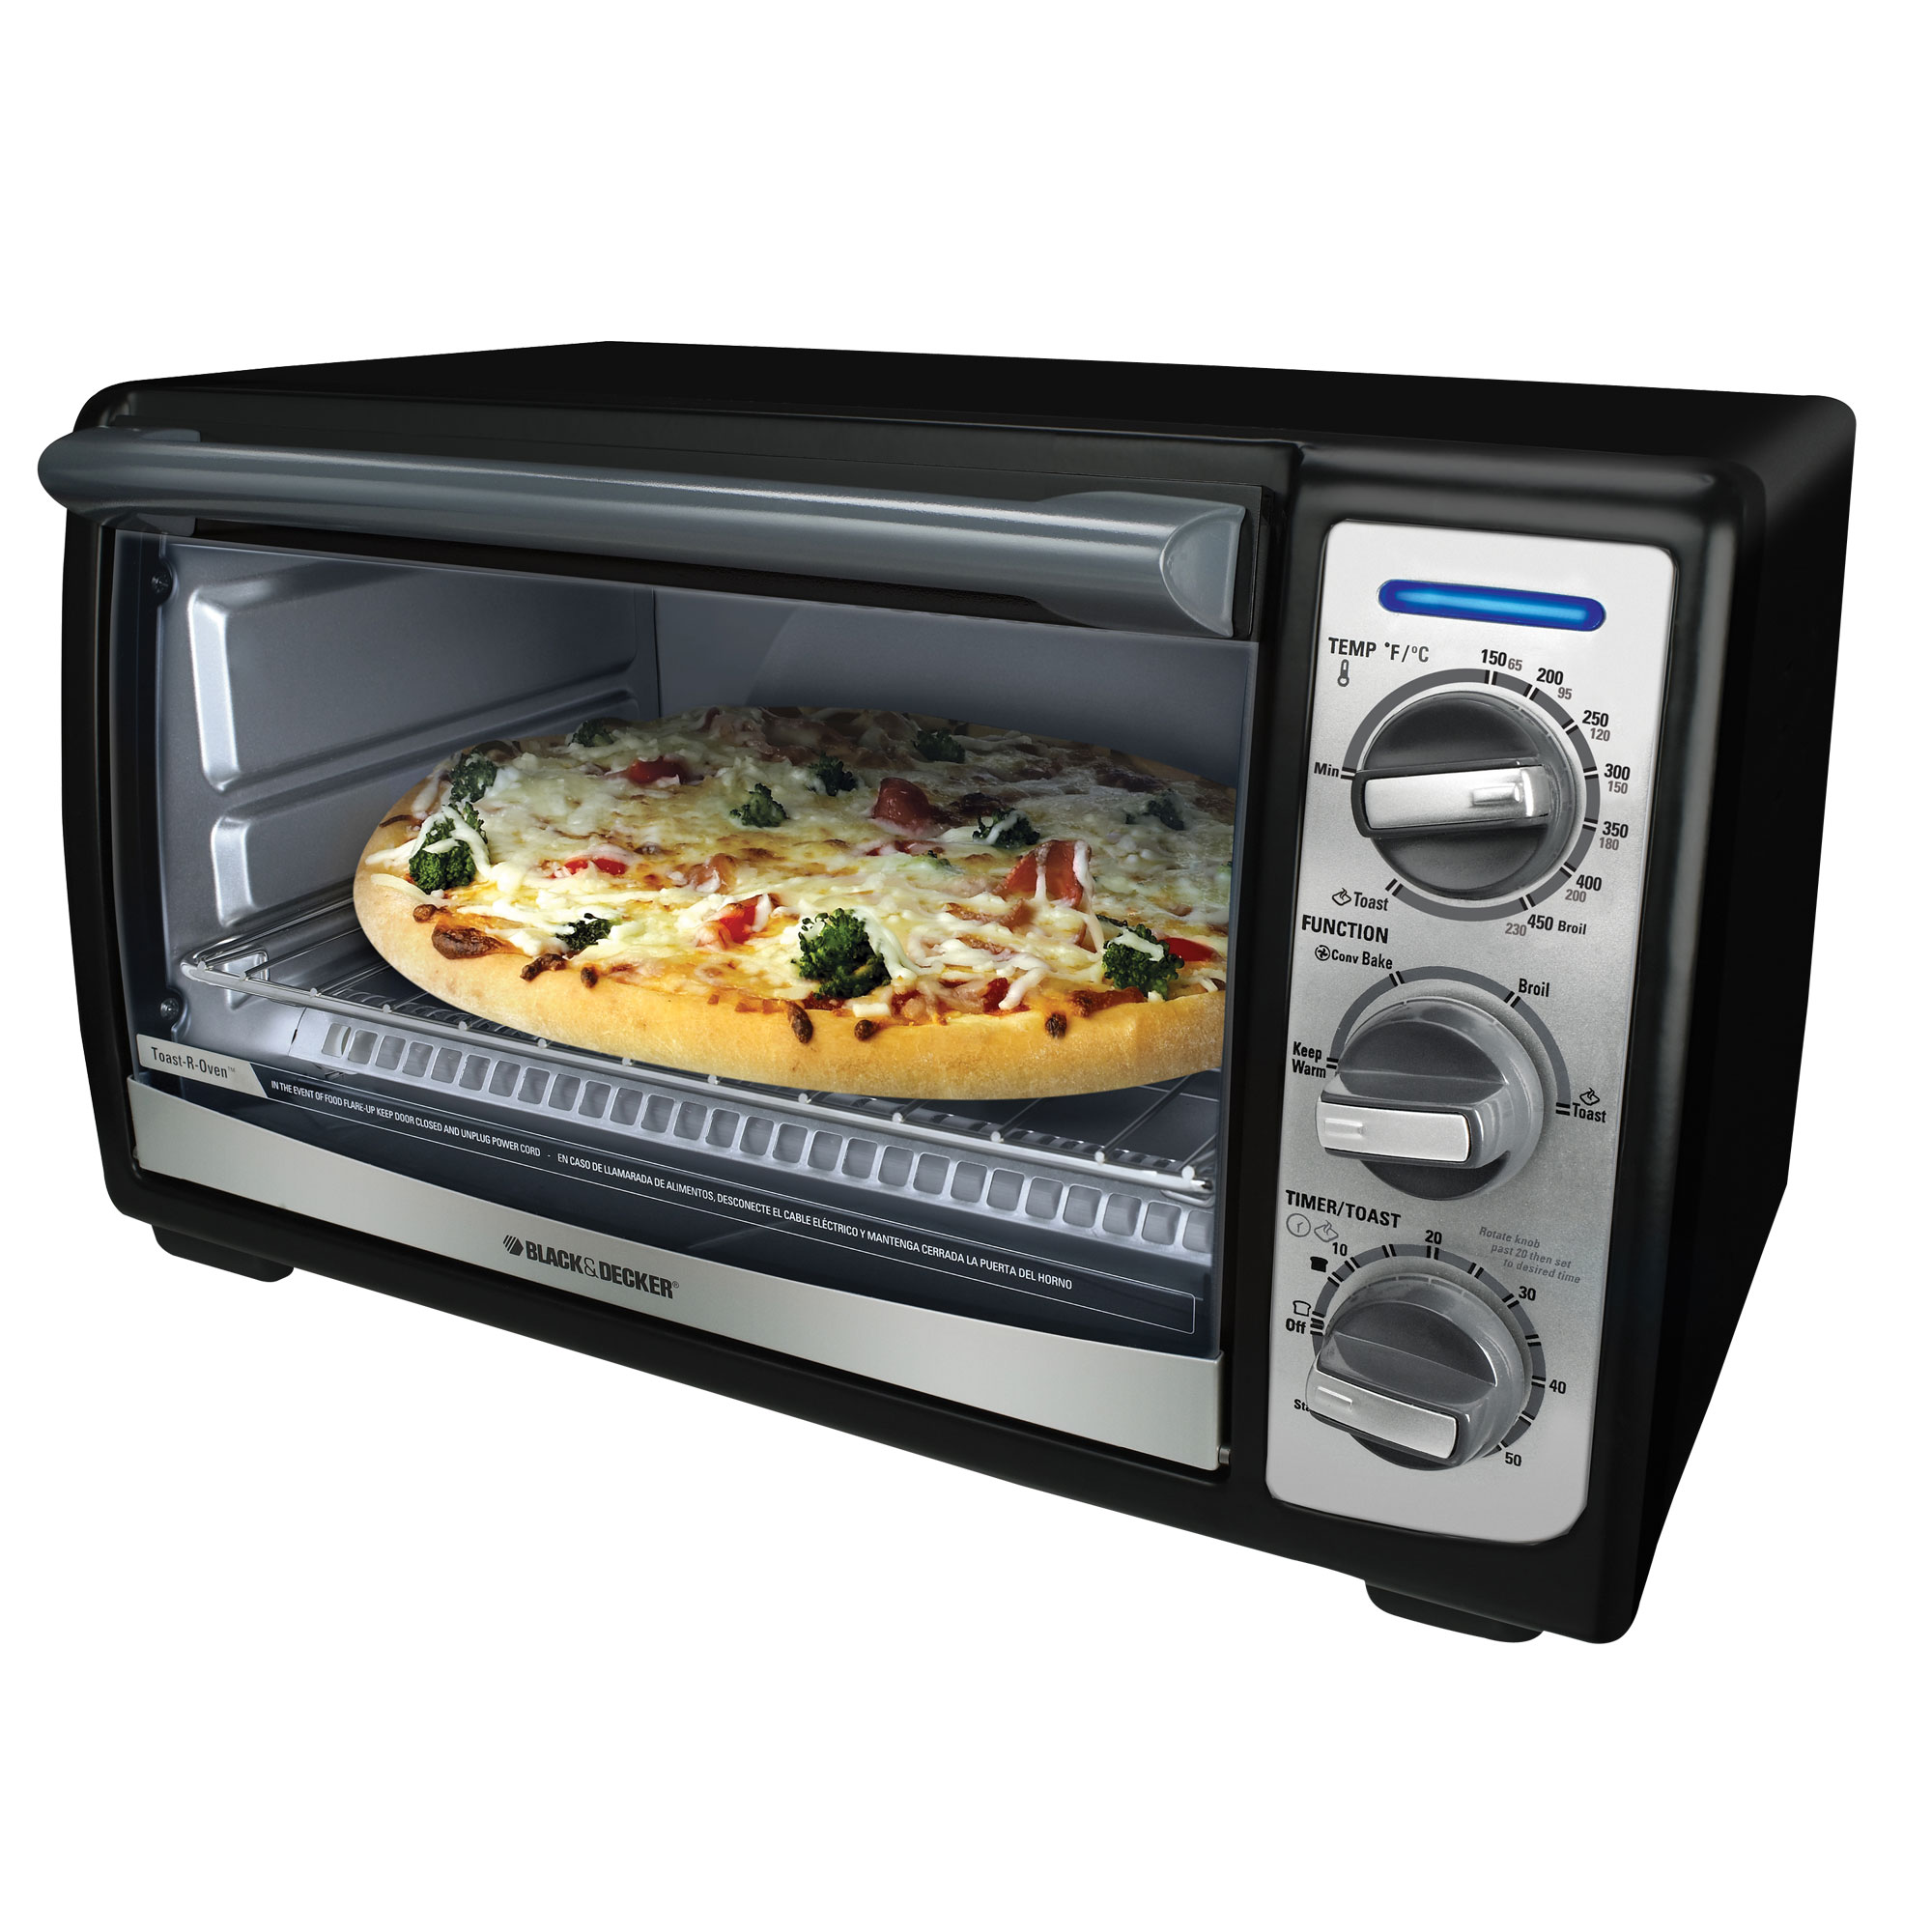 TRO4075B.ashx?mh=285 black decker countertop toast r oven tro4075b black decker  at cita.asia